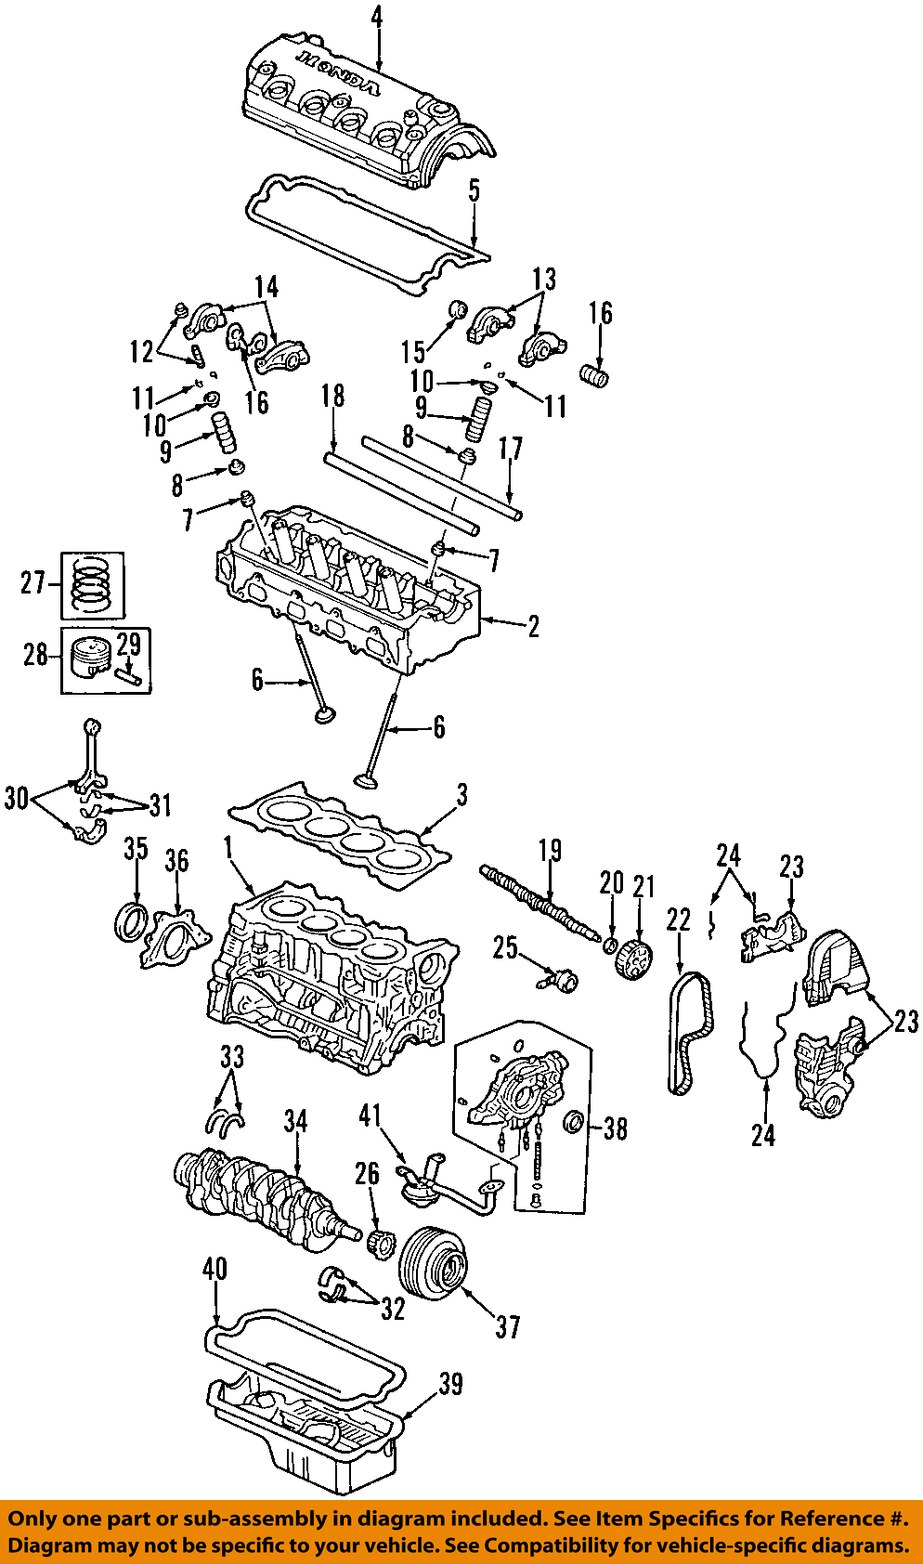 hight resolution of 1989 honda civic engine diagram wiring diagram used 1989 honda civic engine diagram 1989 honda civic engine diagram